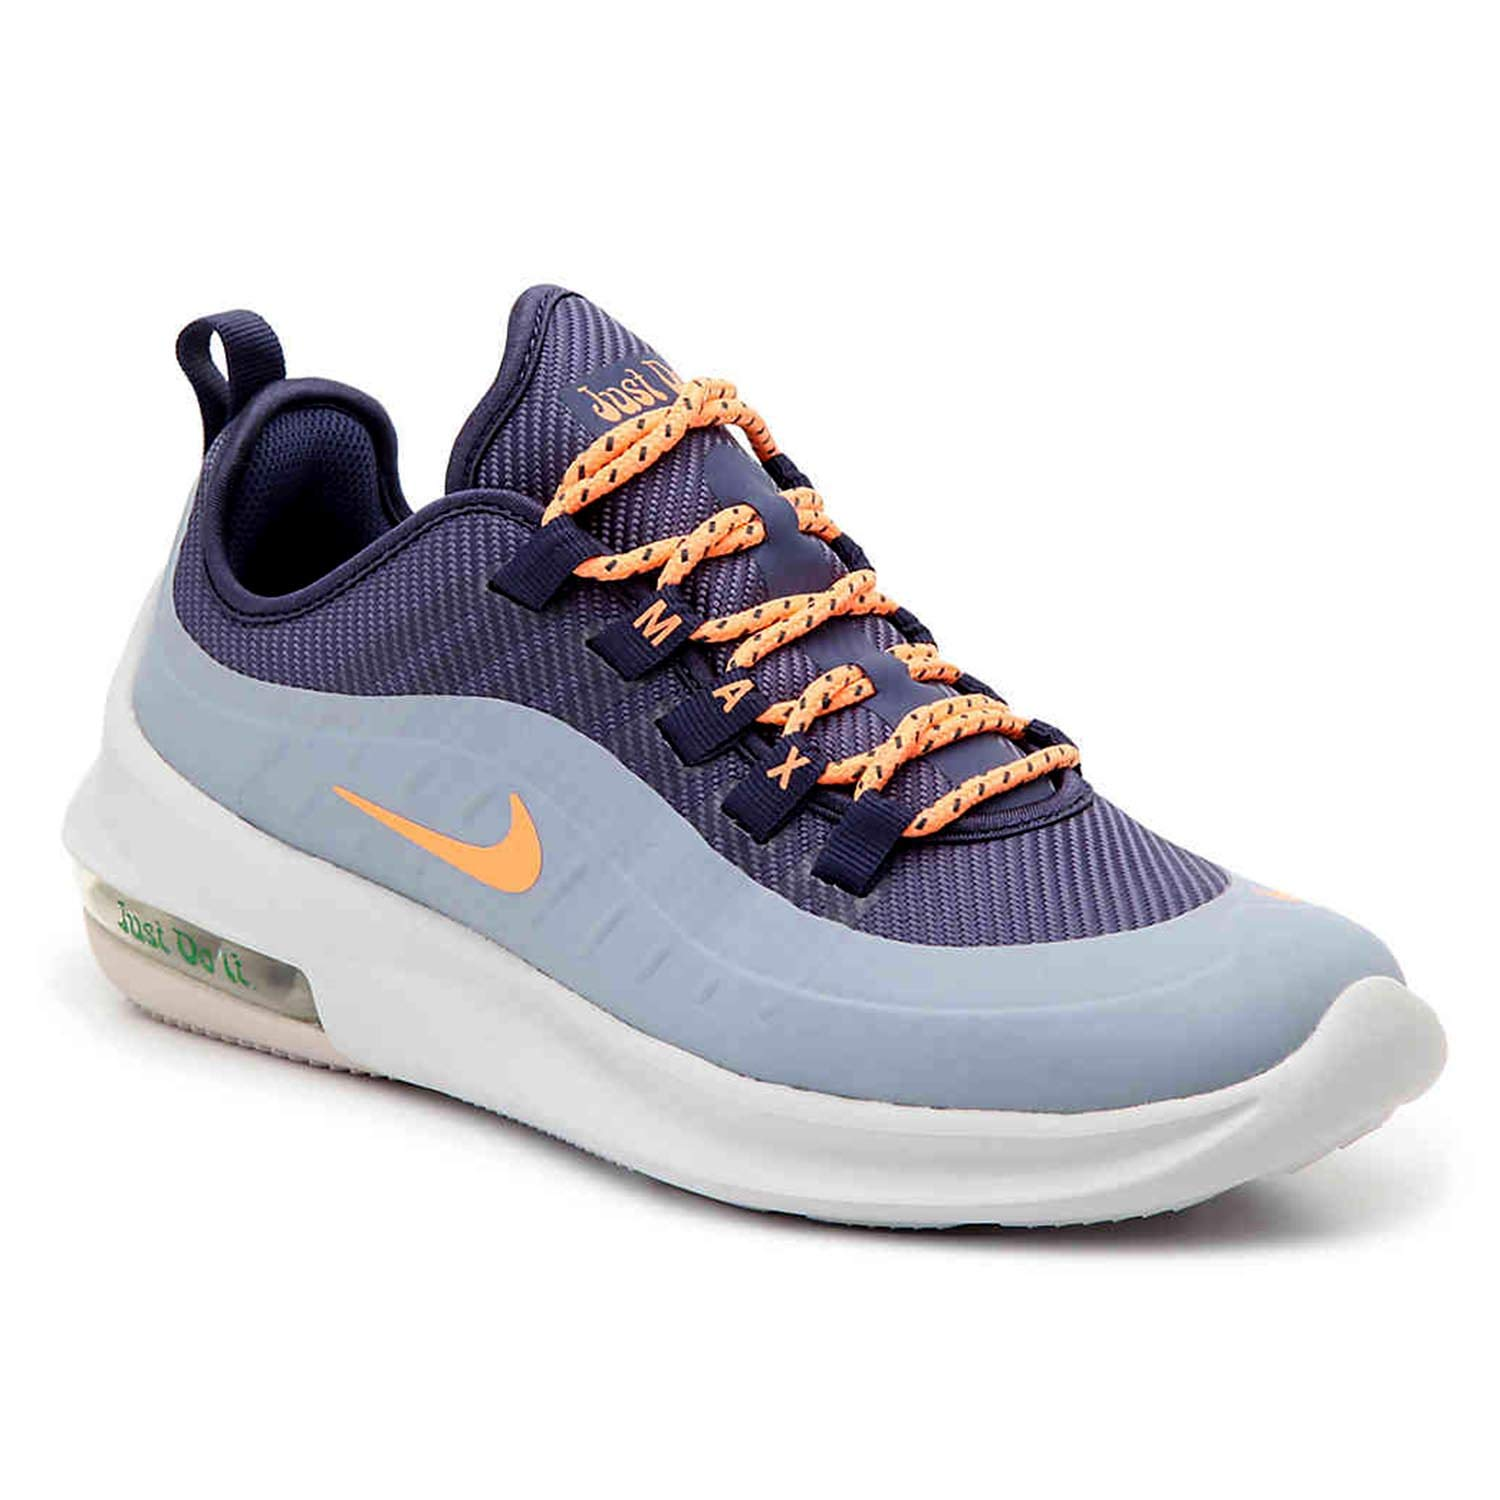 Nike Women's Air Max Axis Running Shoe (5.5 M US, Sanded Purple/Orange Pulse)